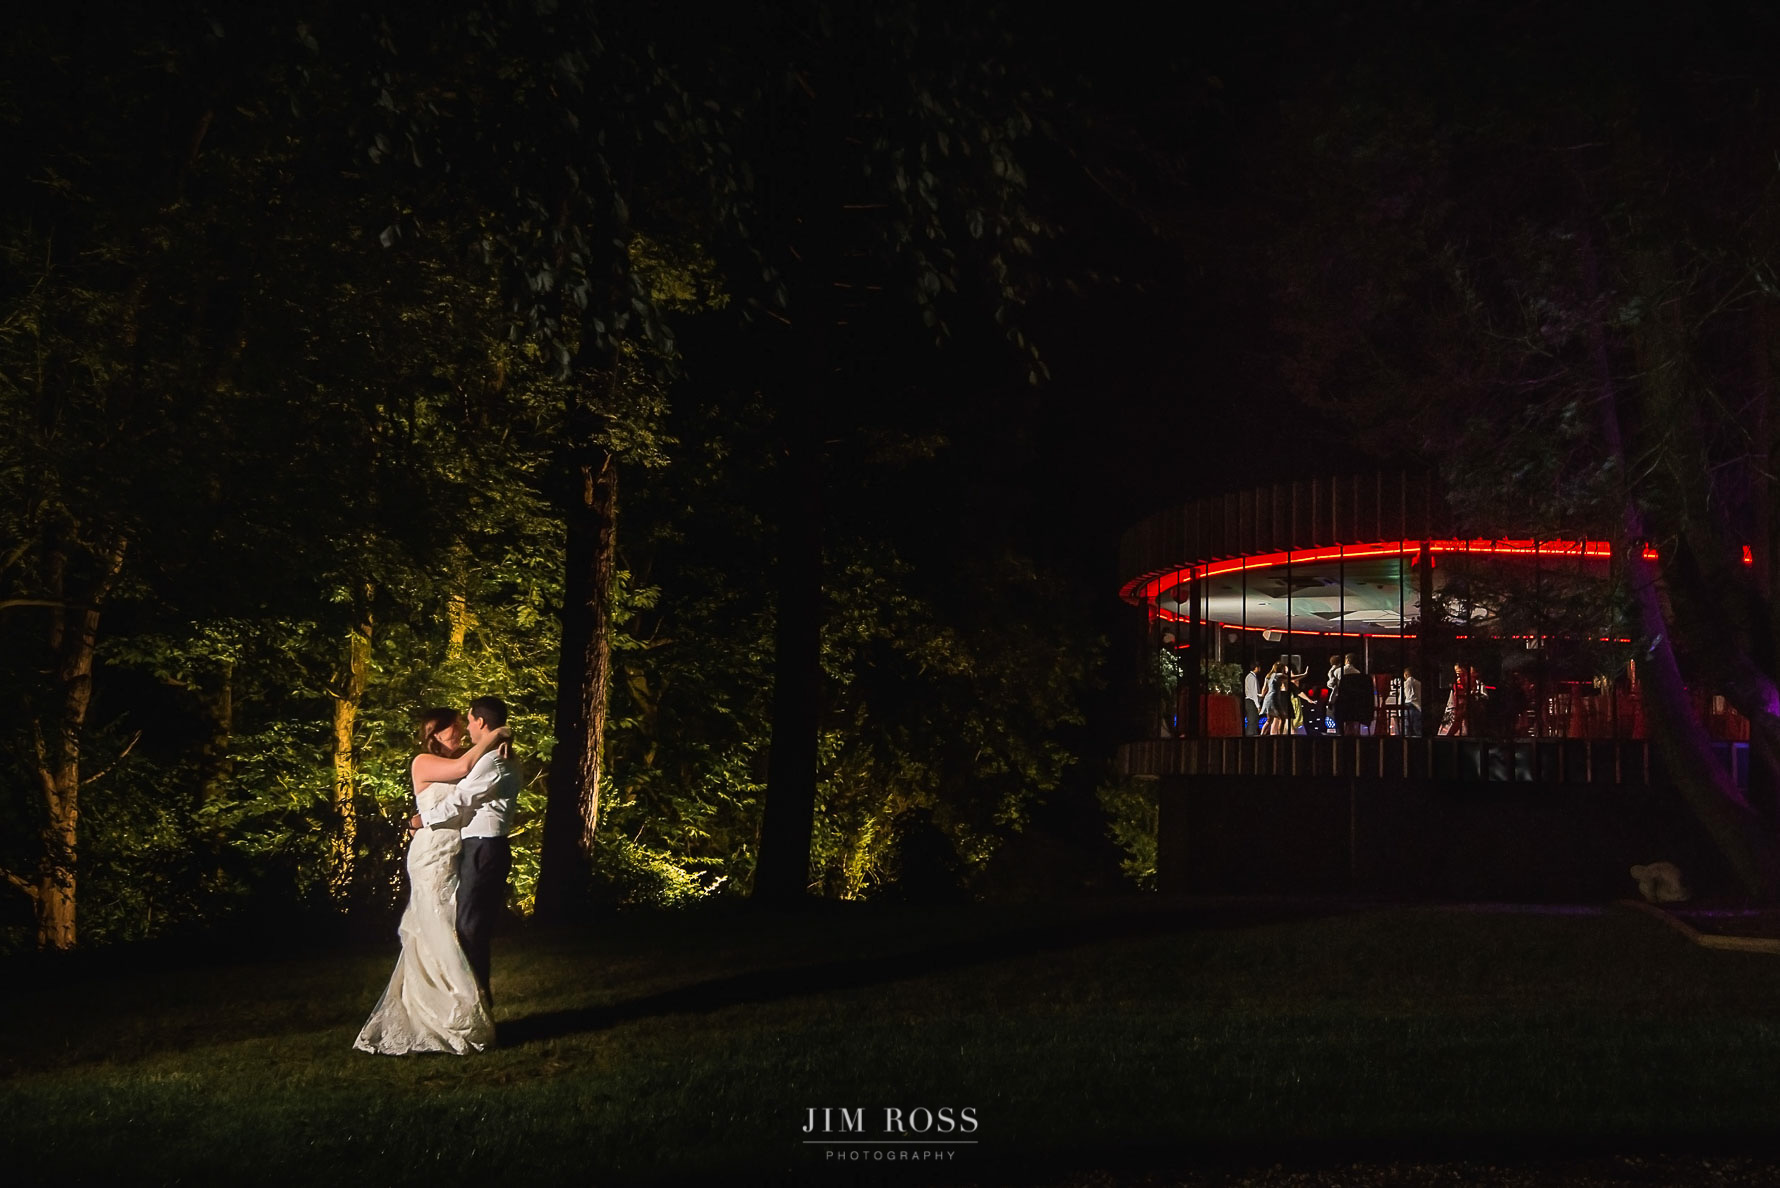 Night time couple portrait in garden as guests party in background